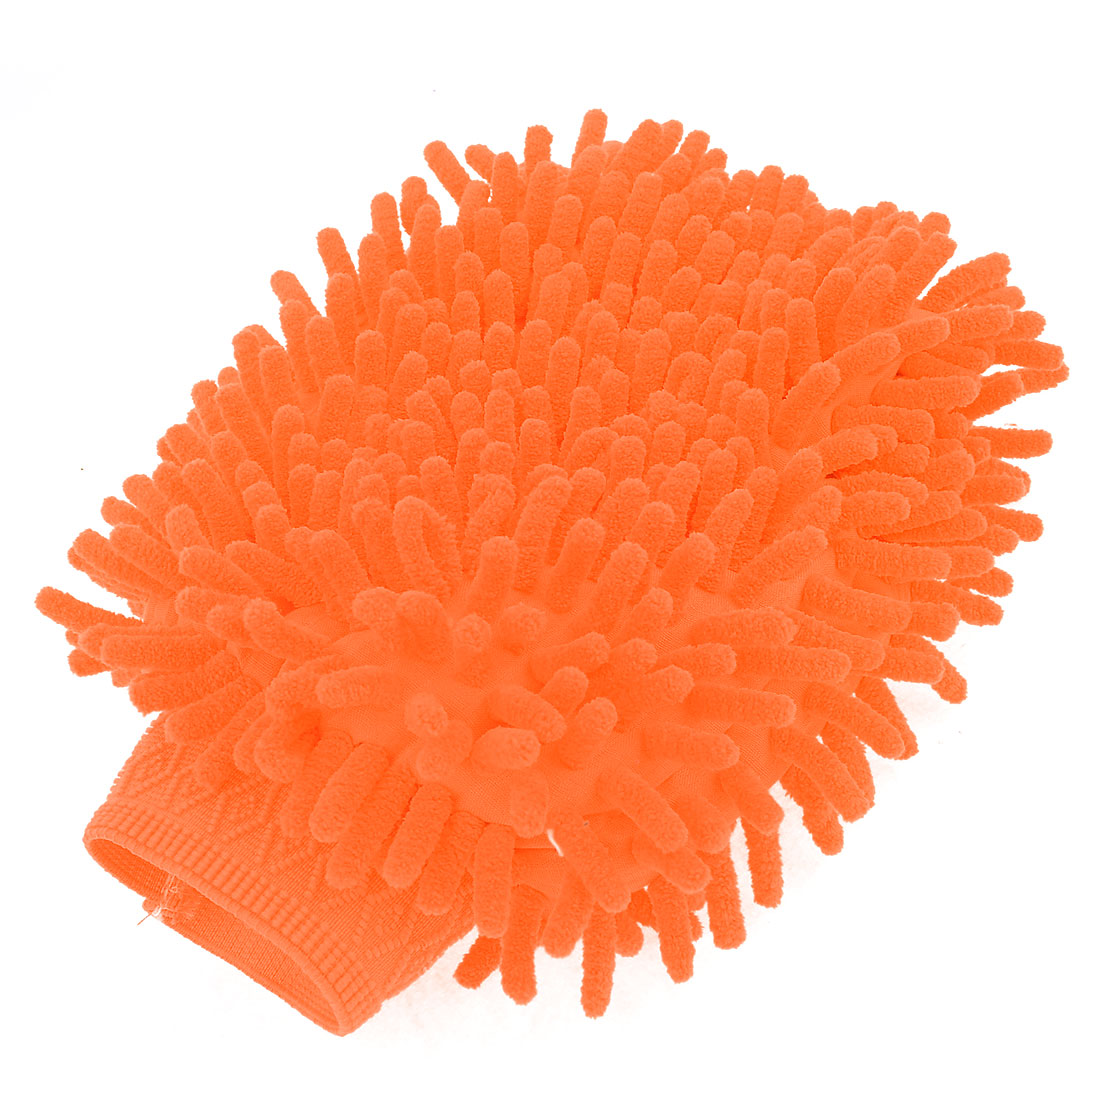 Household Stretch Chenille Furniture Window Scrubing Gloves Mittens Orange